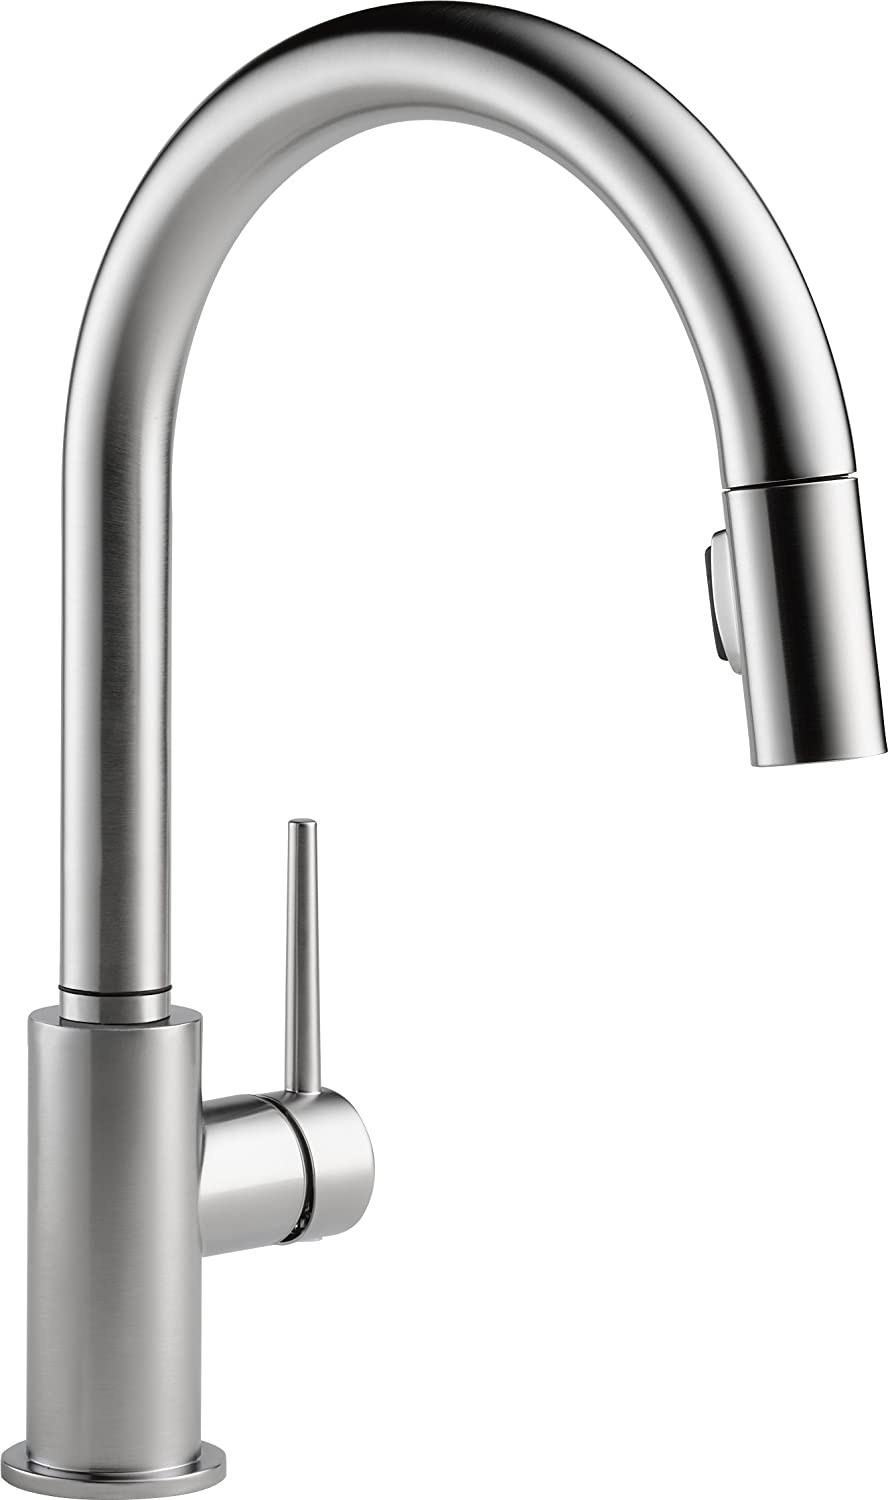 ... Delta 9159 AR DST Trinsic Single Handle Pull Down Kitchen Faucet, Arctic